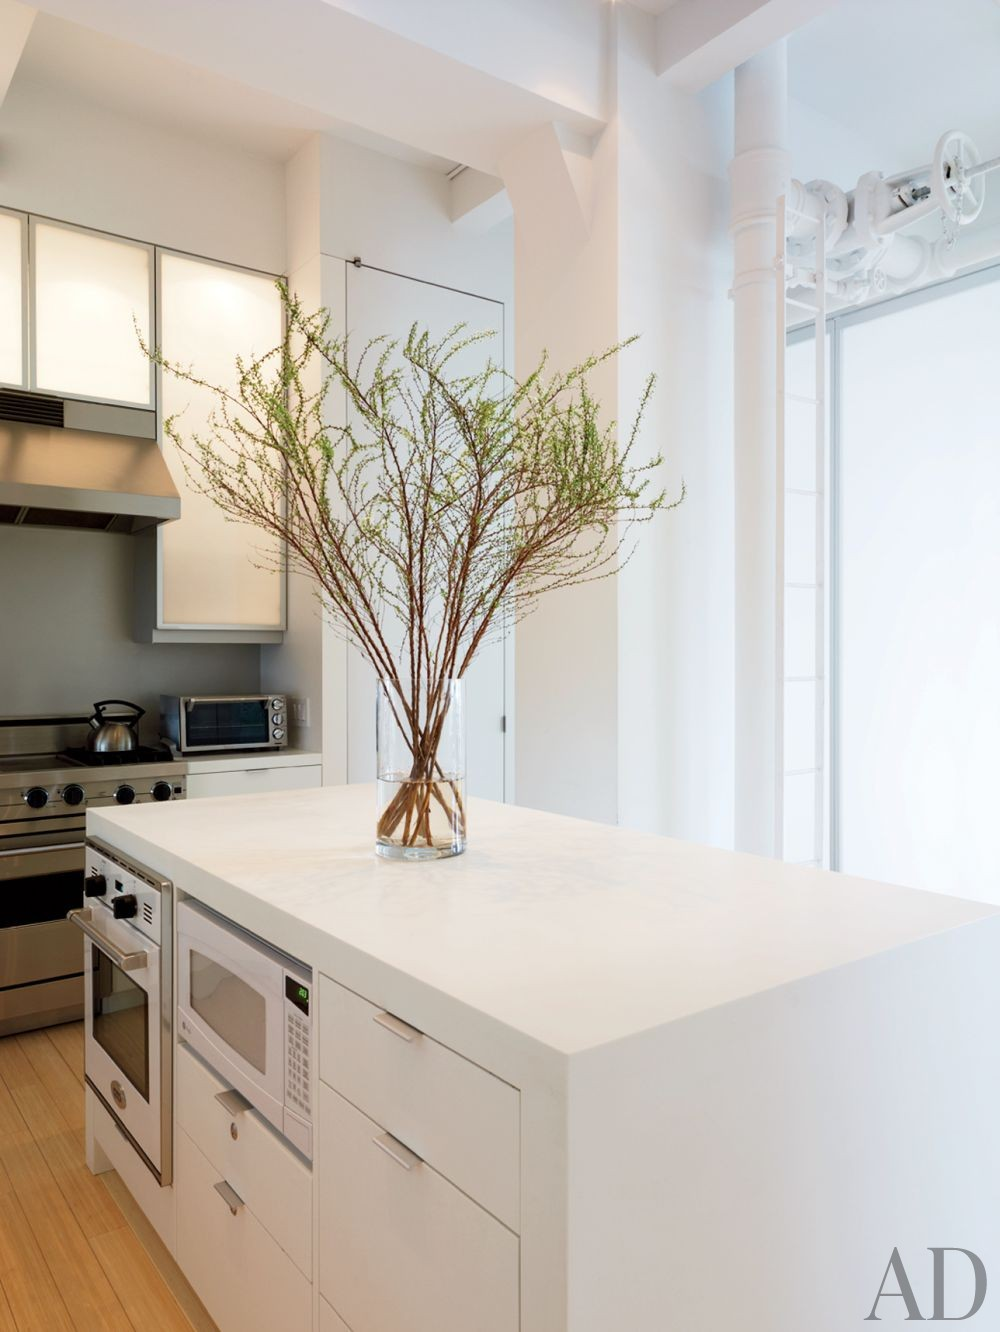 Modern Kitchen and Desai/Chia Architecture in New York City